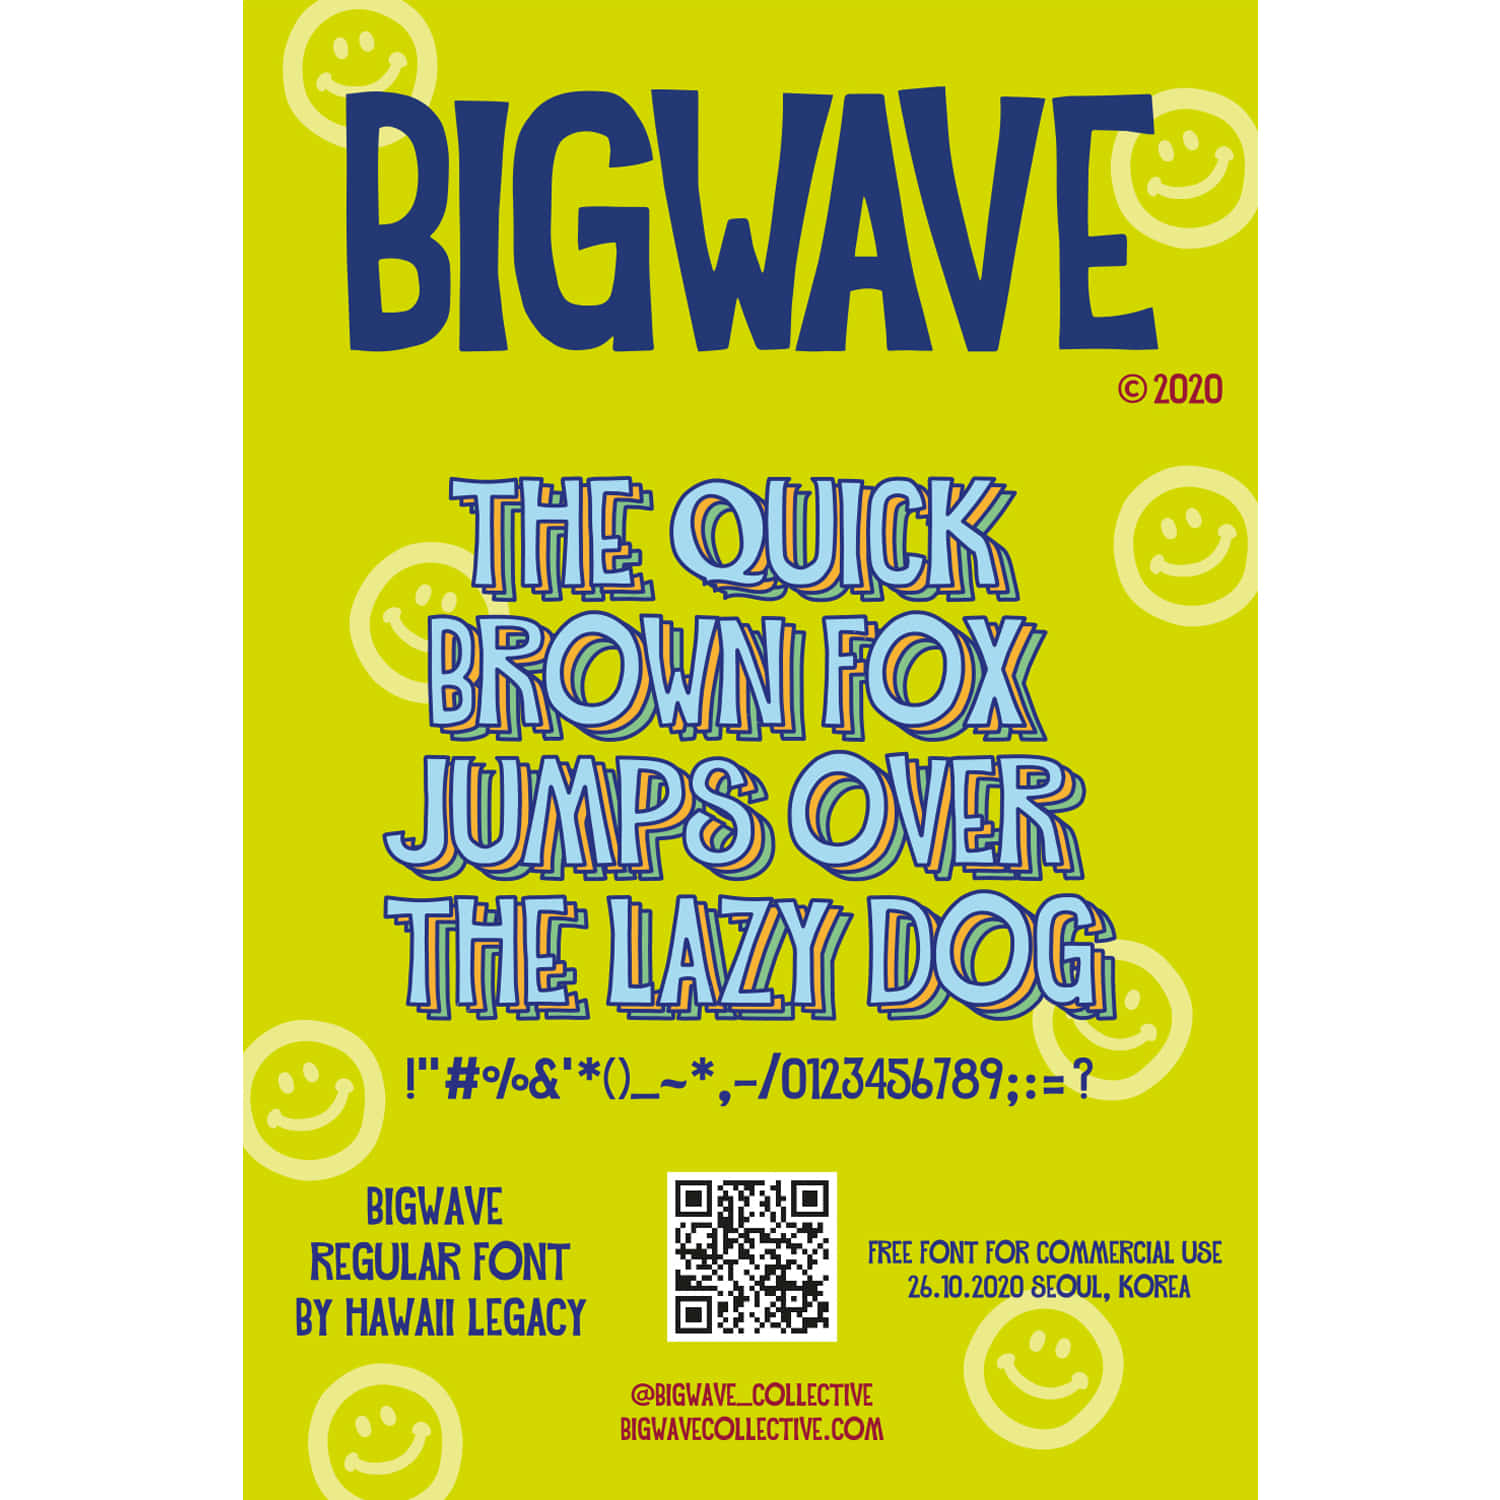 BIGWAVE 20FW EPISODE 3 [BIGWAVE FONT BY HAWAII LAGACY]